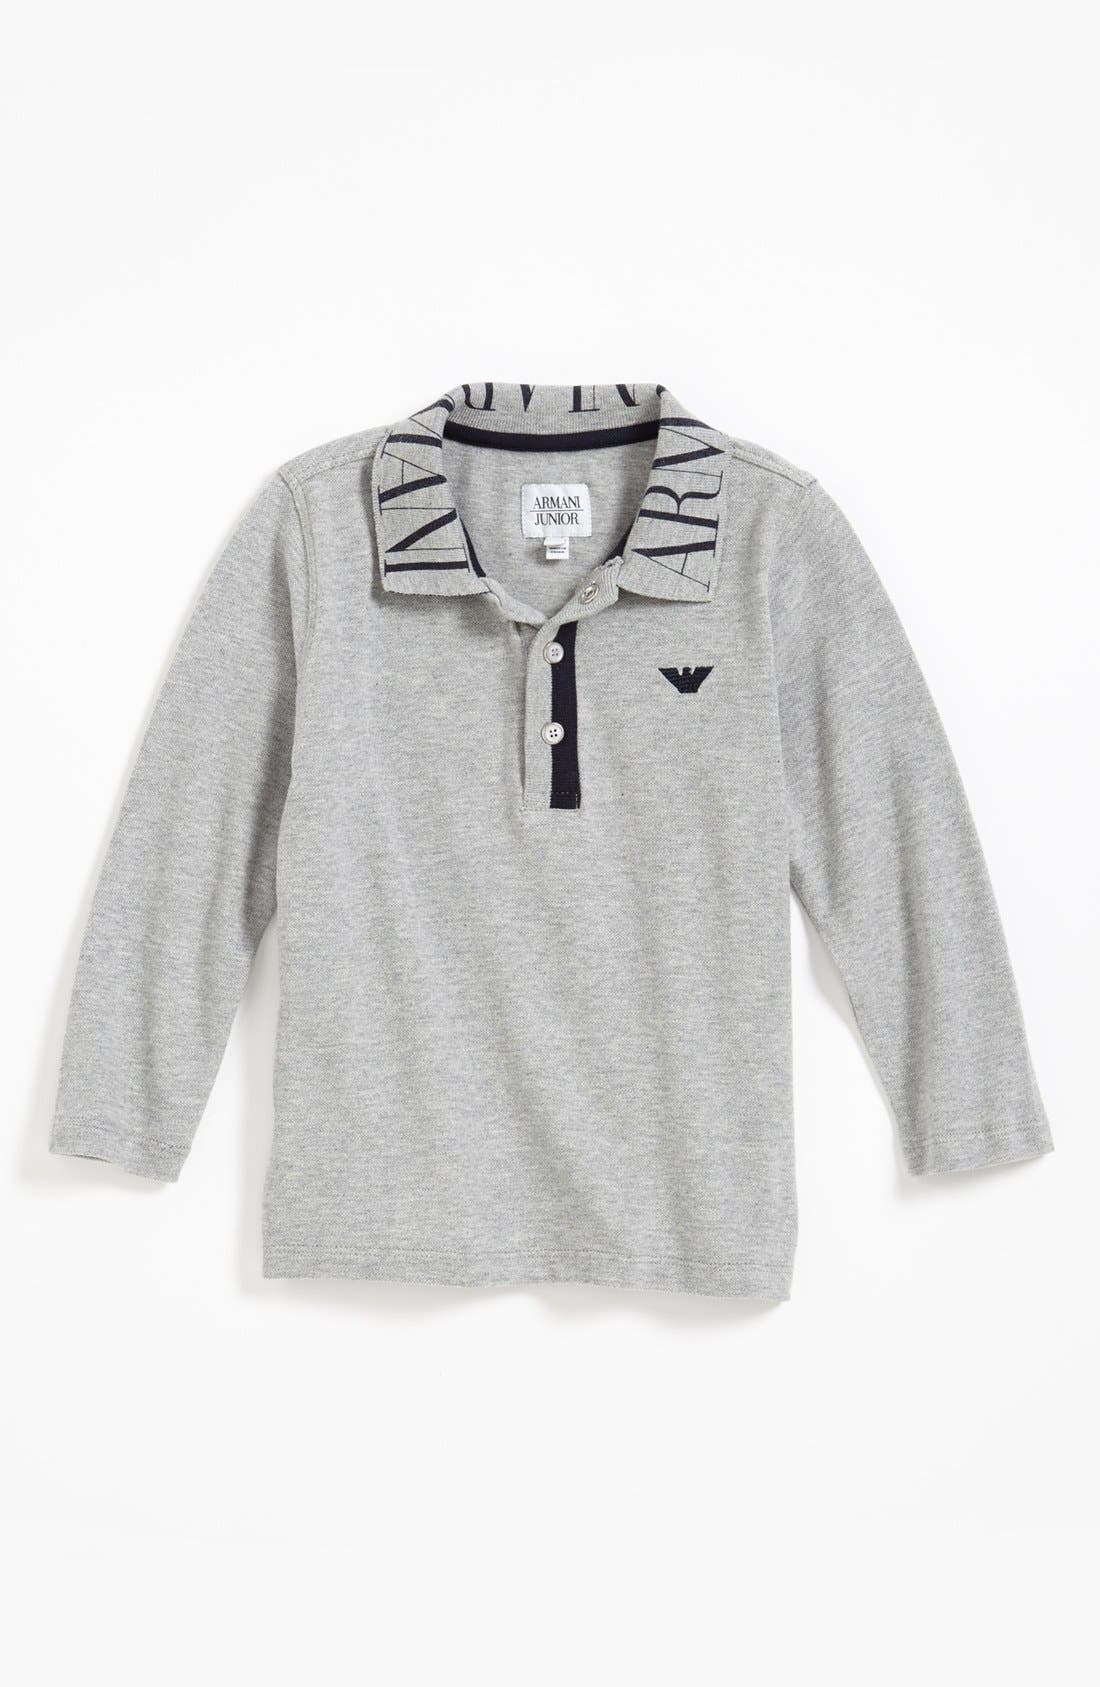 Alternate Image 1 Selected - Armani Junior Long Sleeve Polo (Toddler Boys, Little Boys & Big Boys)